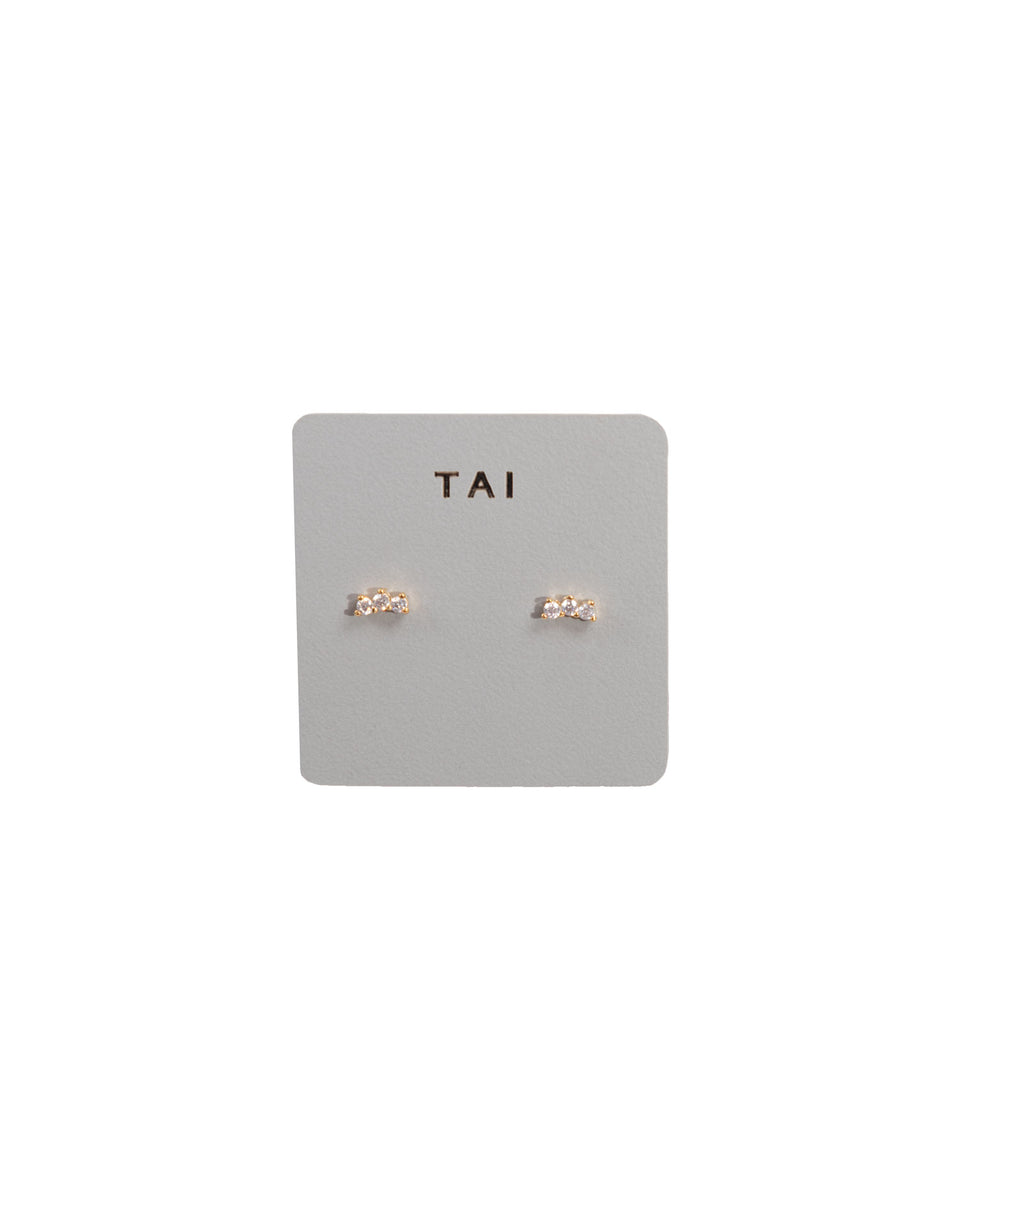 TAI Gold Three Stone Stud Earrings